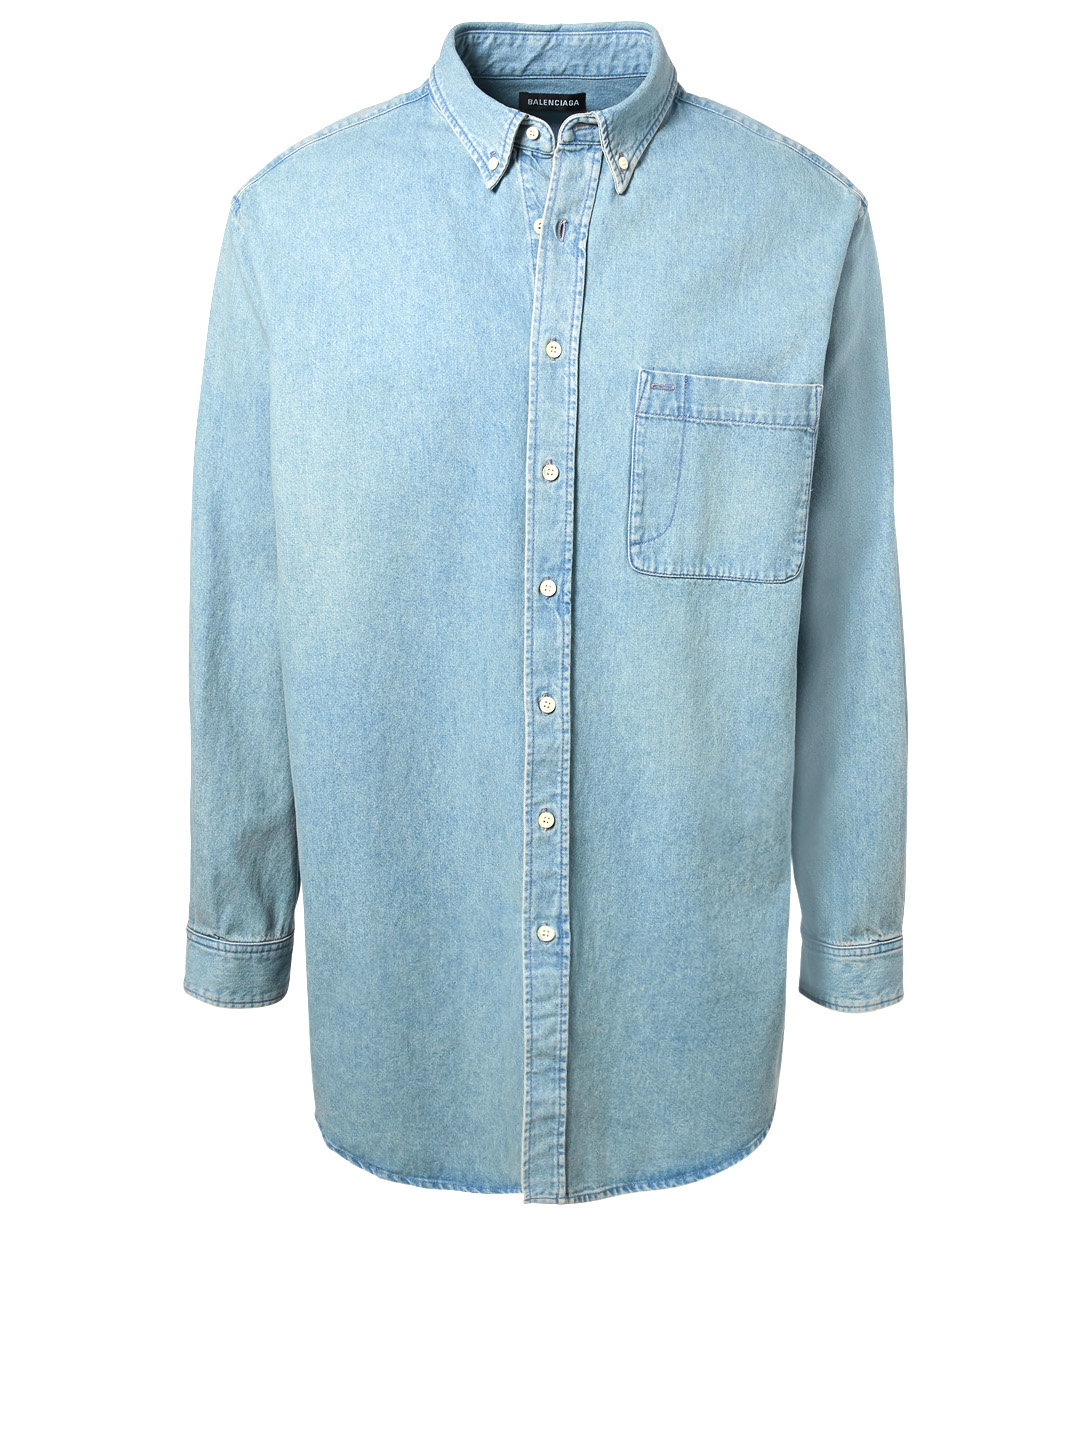 c3184a2fc BALENCIAGA Oversized Denim Button-Down Shirt | Holt Renfrew